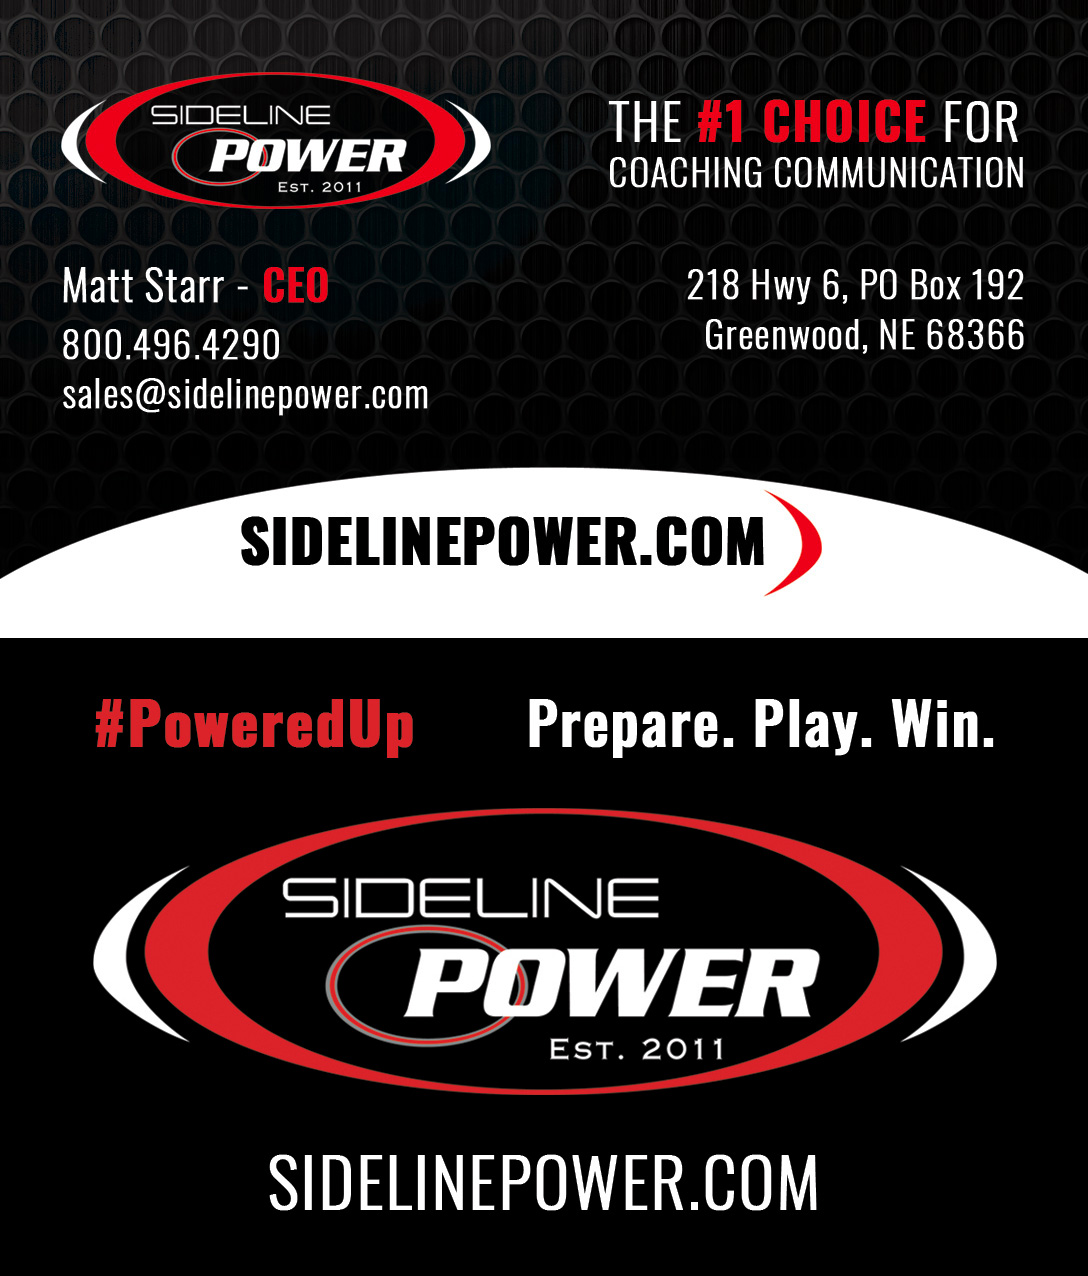 Sideline power business card damien sterling web designer sideline power business card damien sterling web designer memorable web print media colourmoves